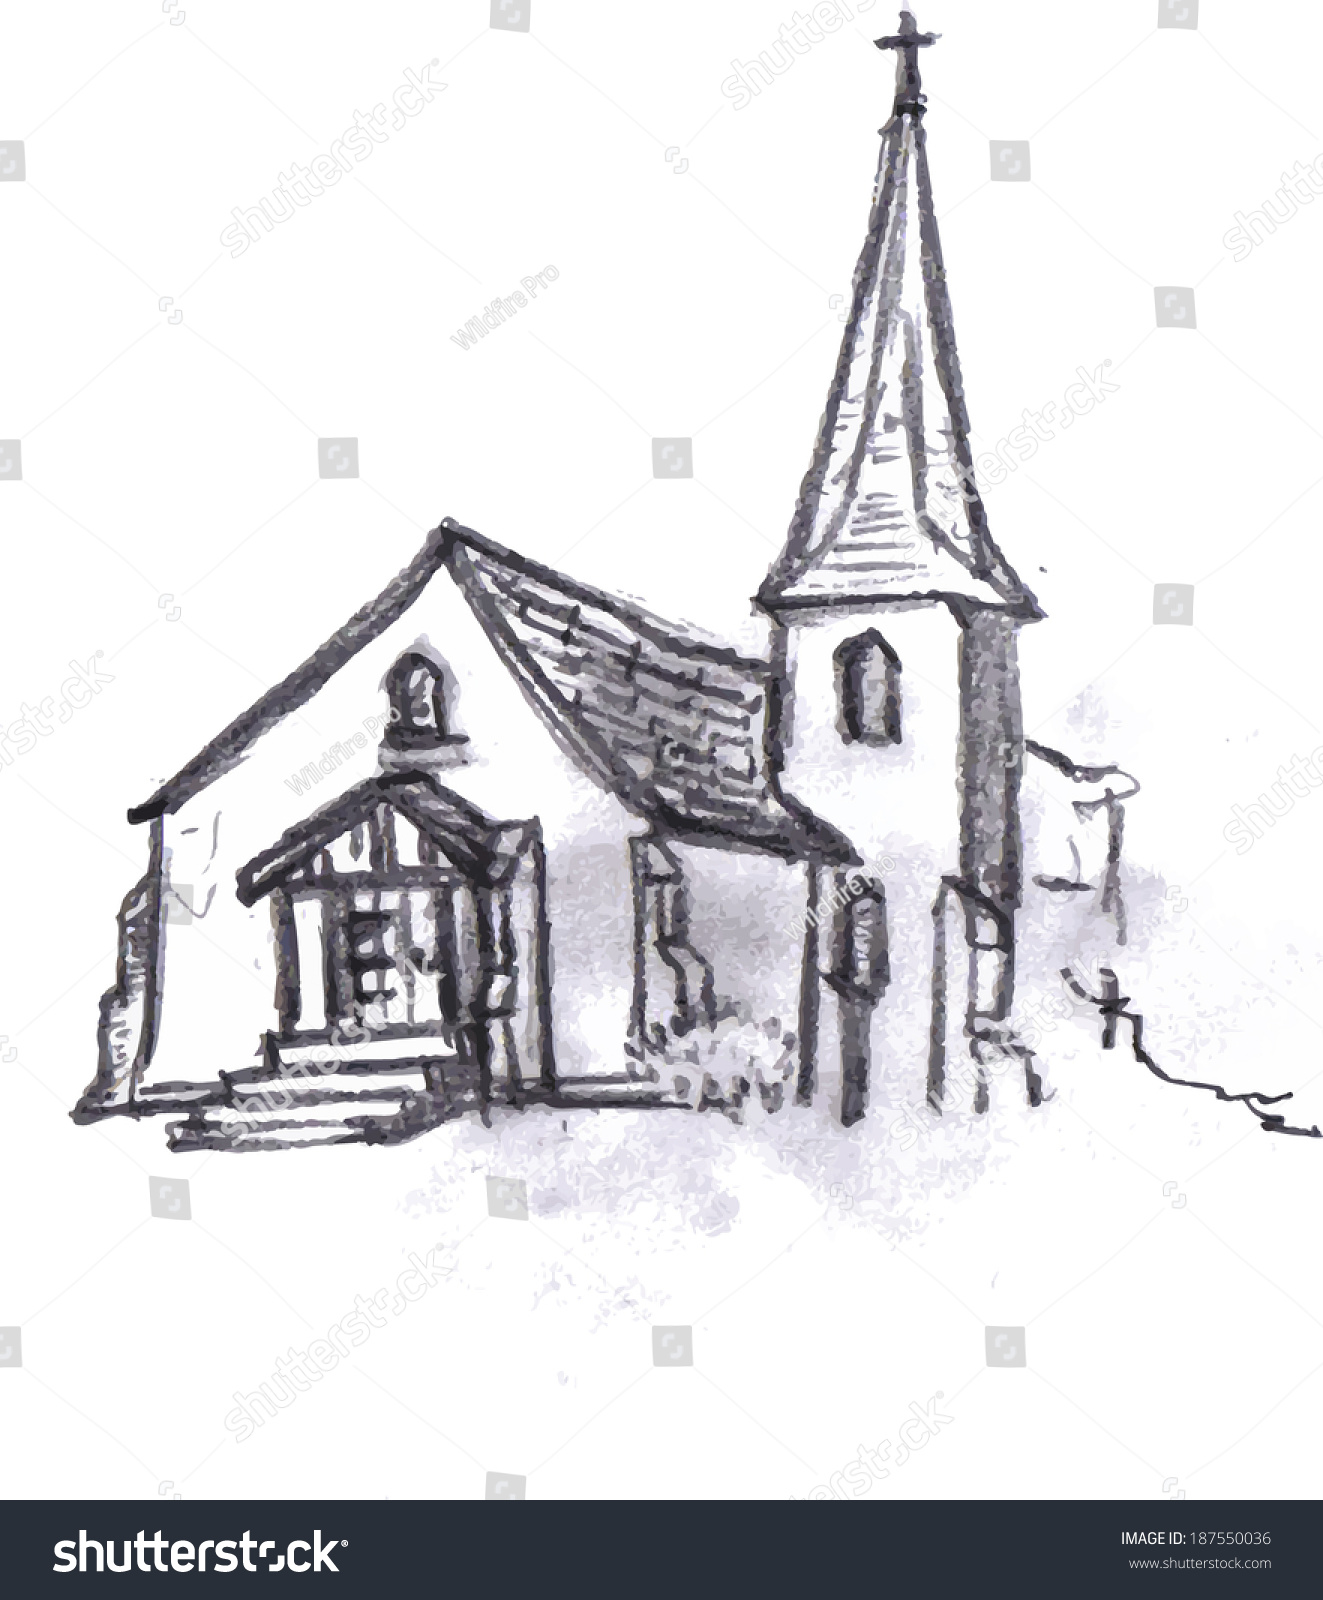 Pencil sketch of an english church in vector format